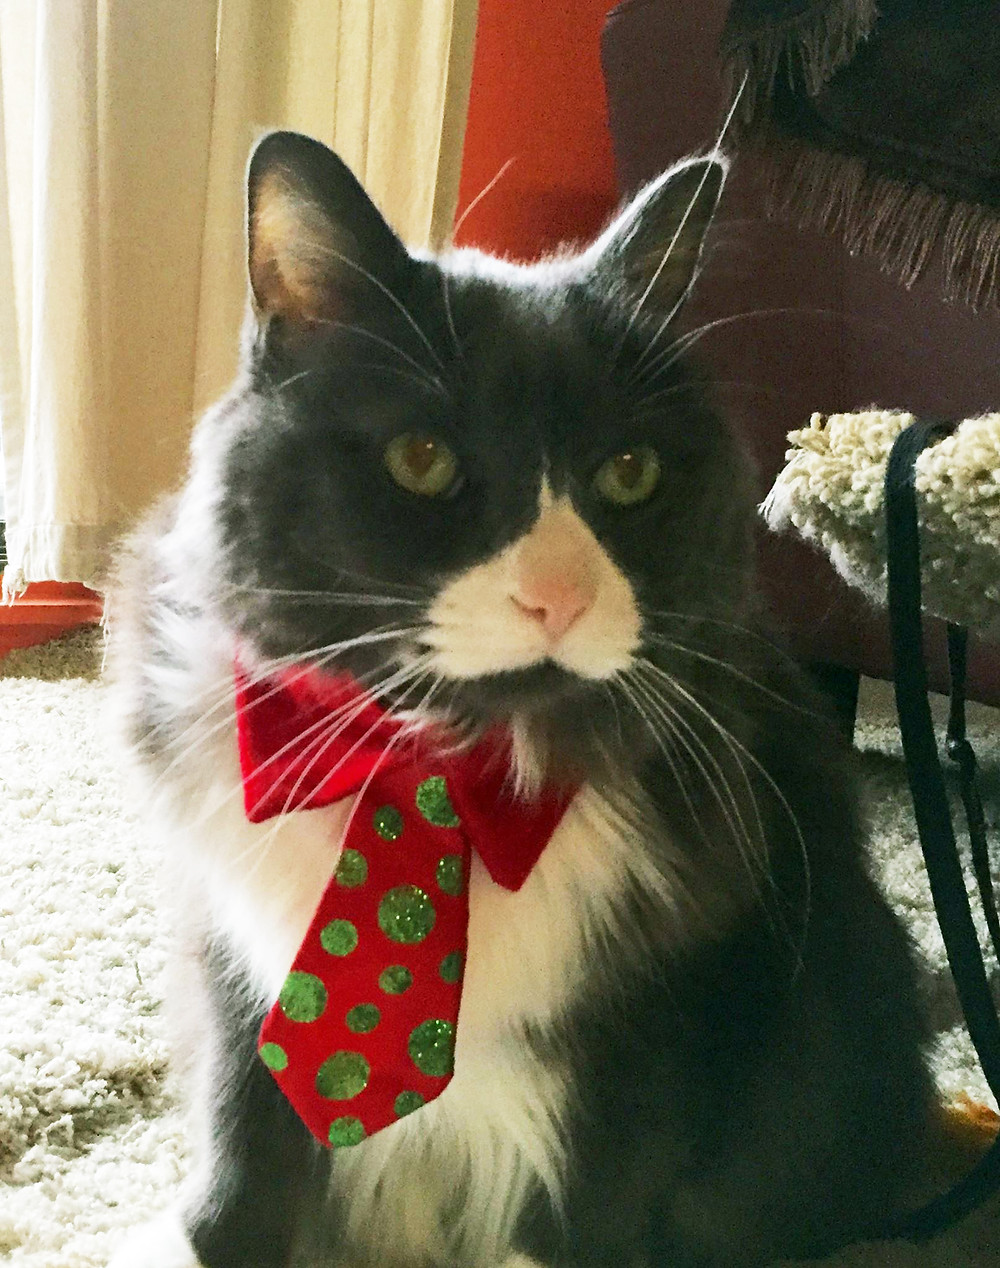 Zephyr and his Christmas tie.